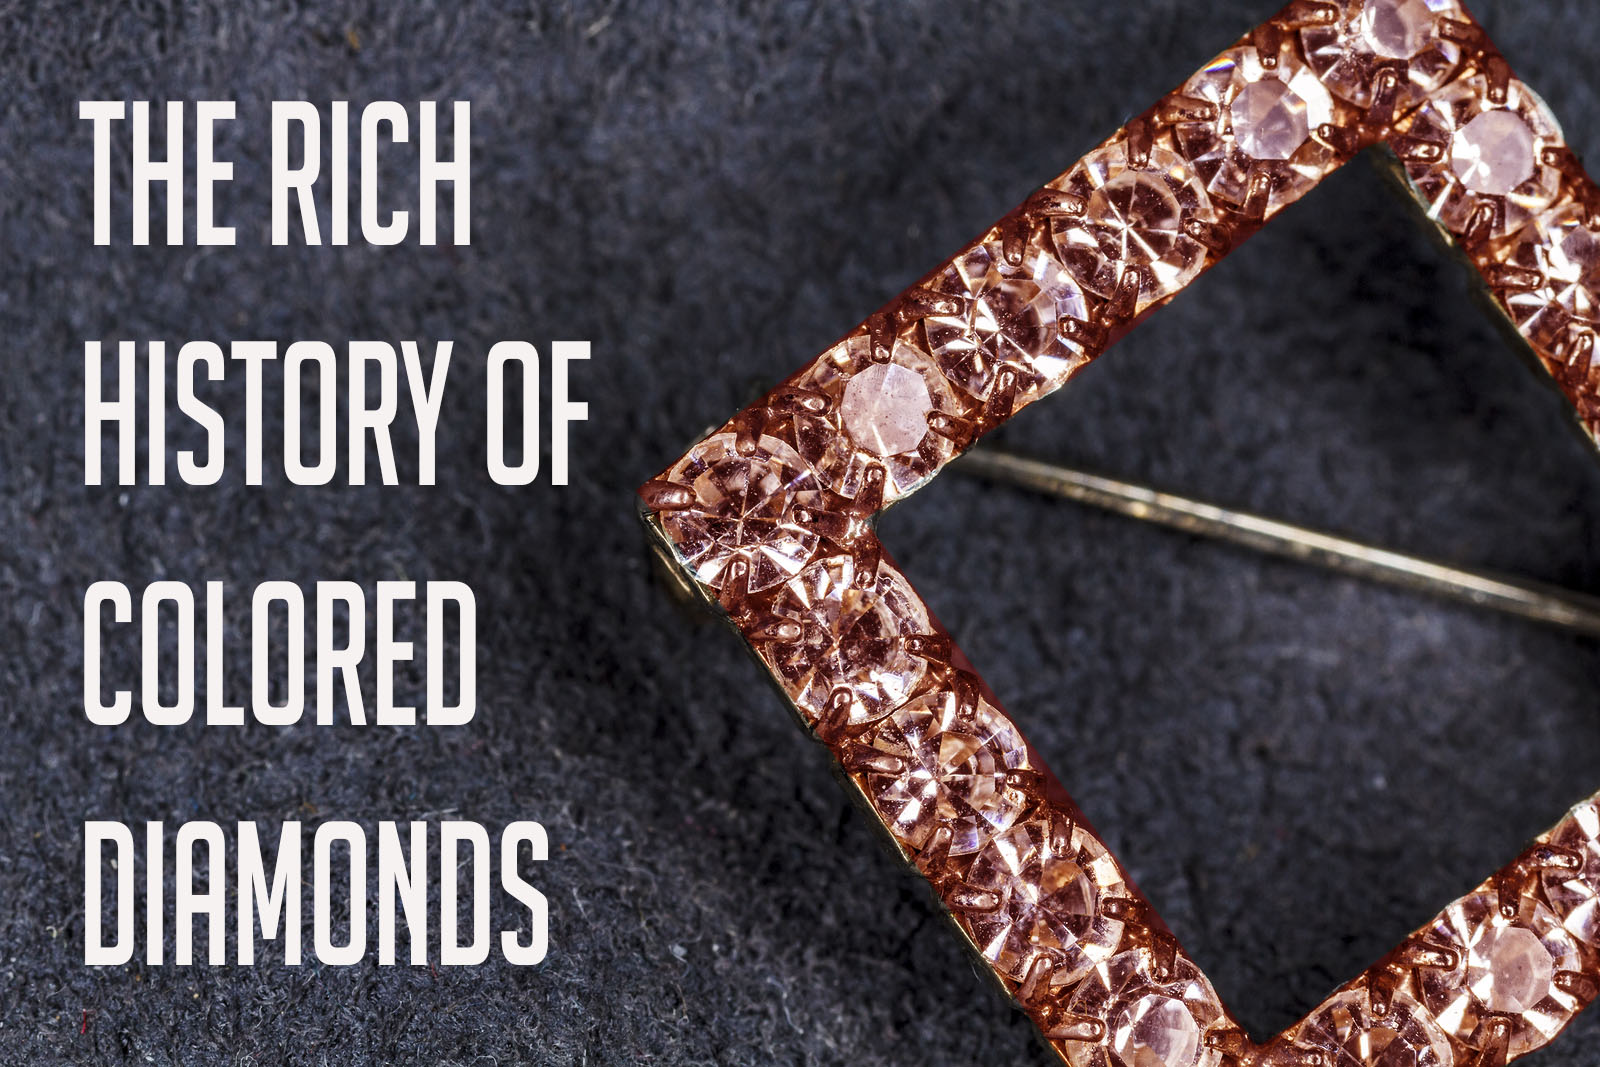 rich history of colored diamonds.jpg